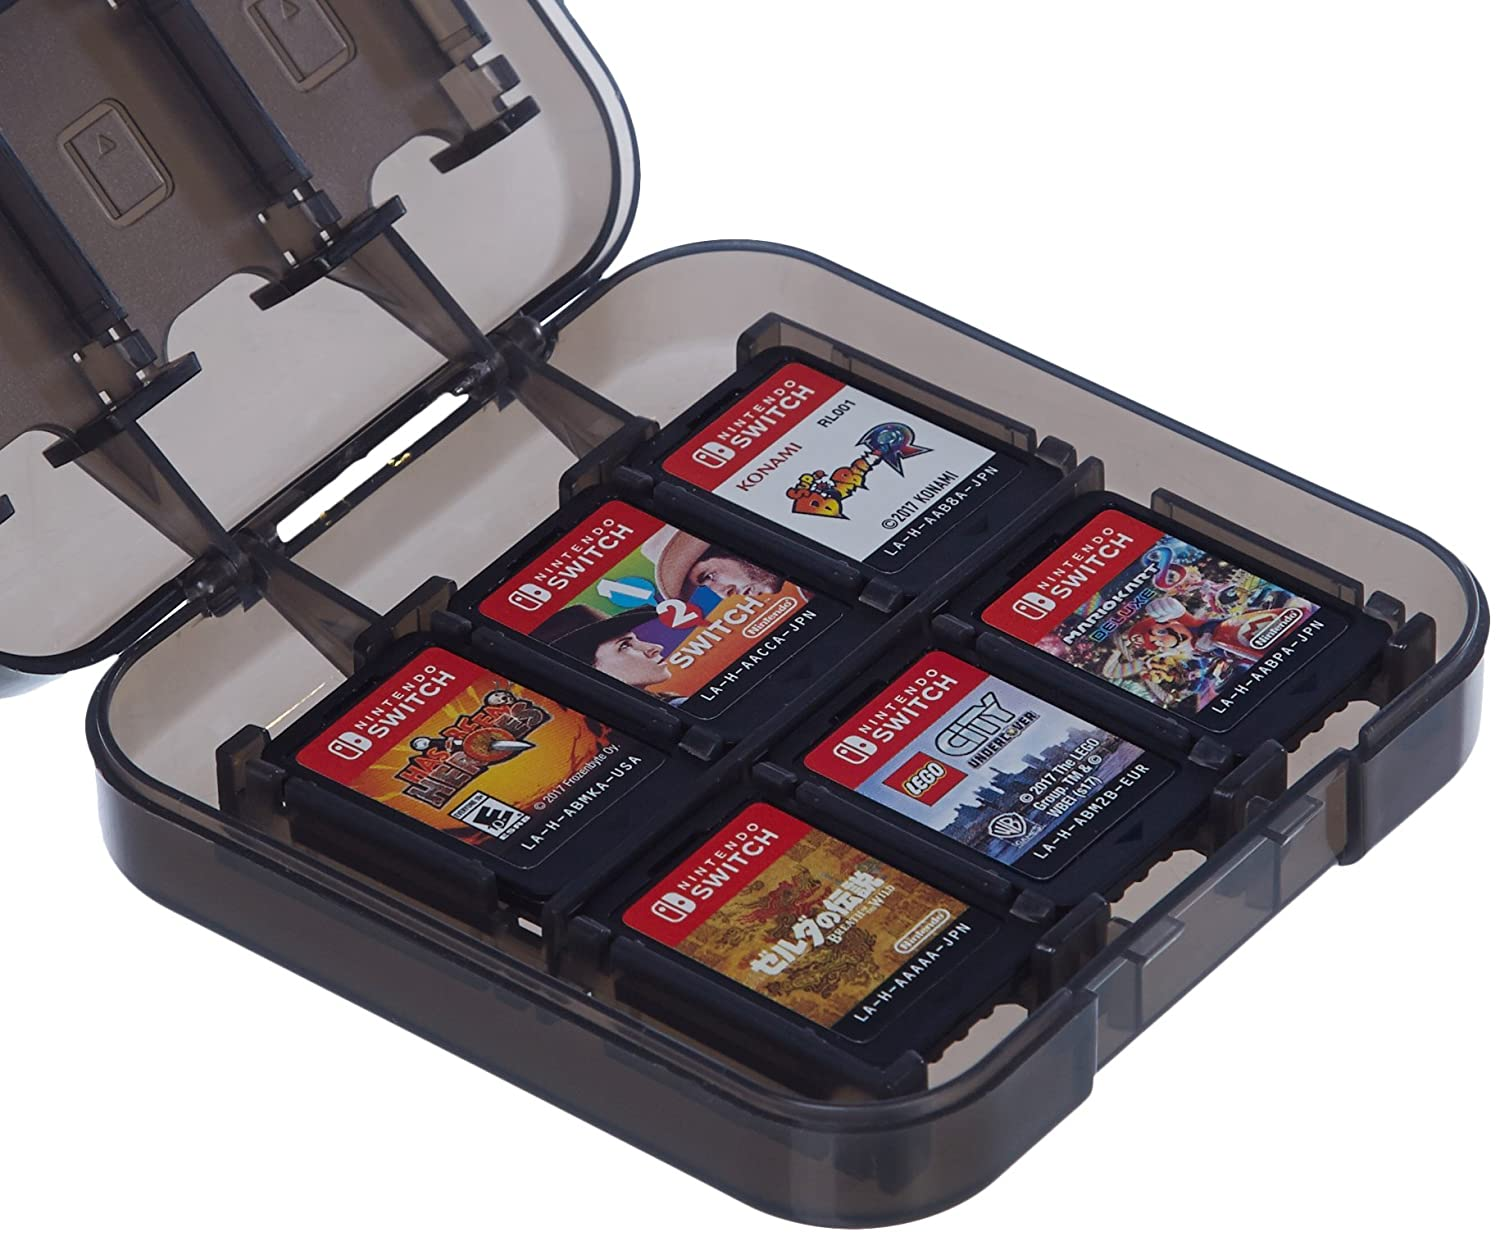 Basics Game Storage Case for 24 Nintendo Switch Games - 3.4 x 3.4 x 1 Inches, Black: Video Games